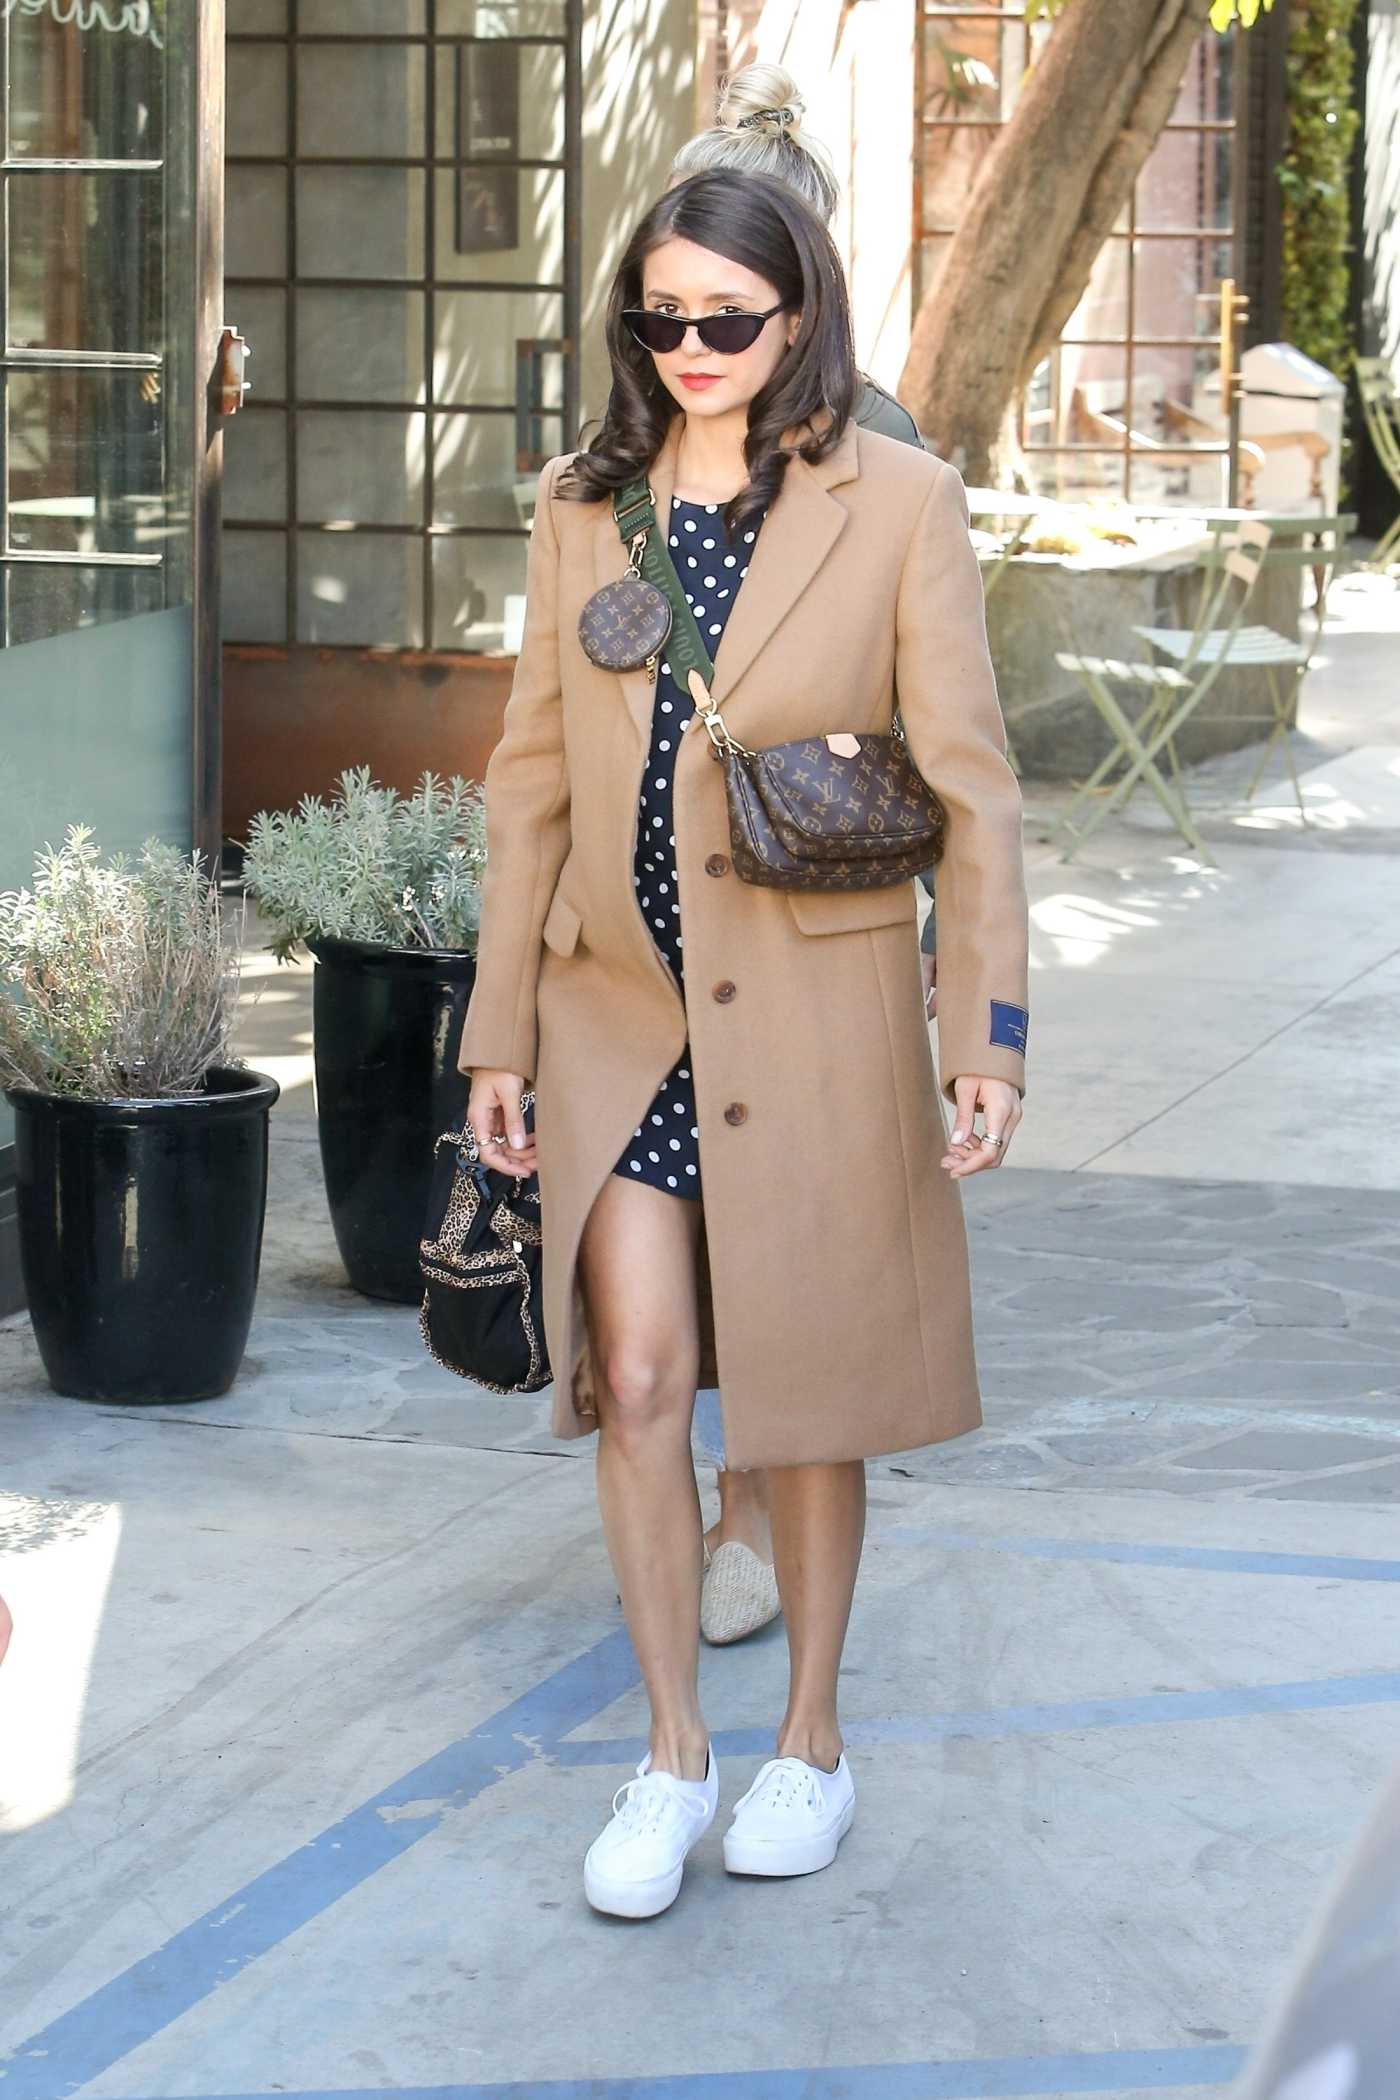 Nina Dobrev in a Beige Coat Leaves Nine Zero One Salon in Los Angeles 10/25/2019